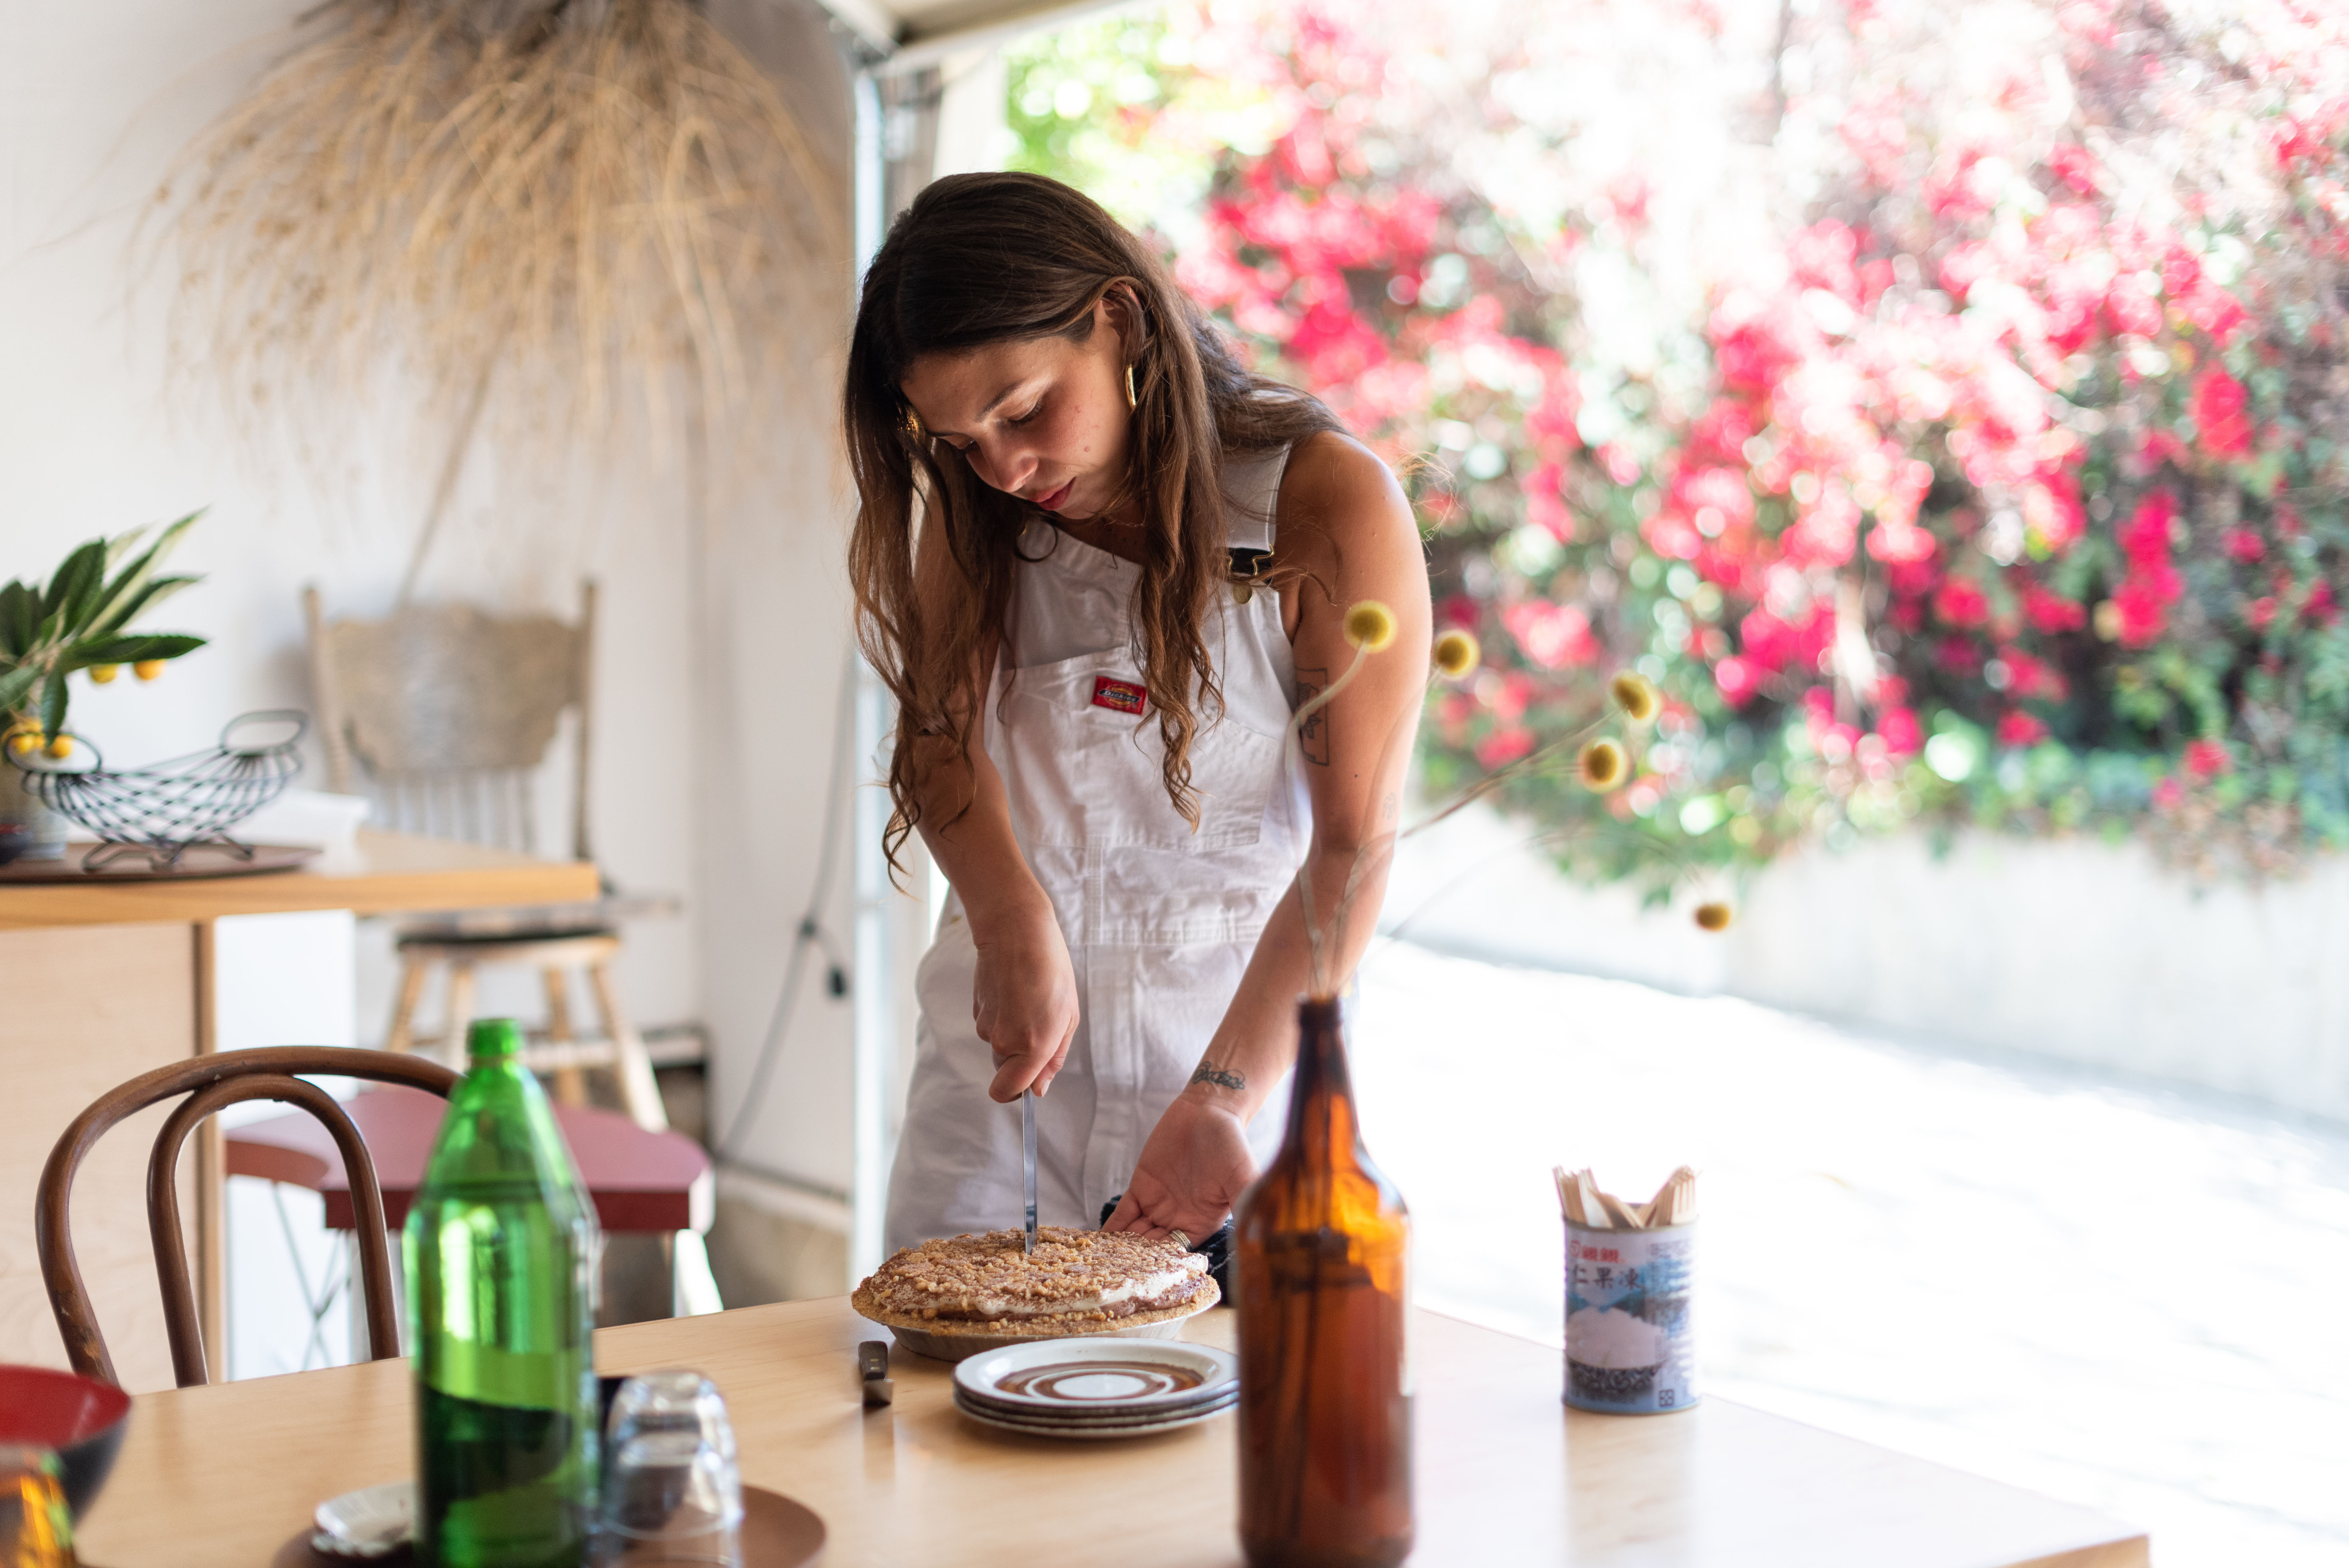 Woman wearing while overalls cuts into a pie standing near a garage door that leads to the outside.